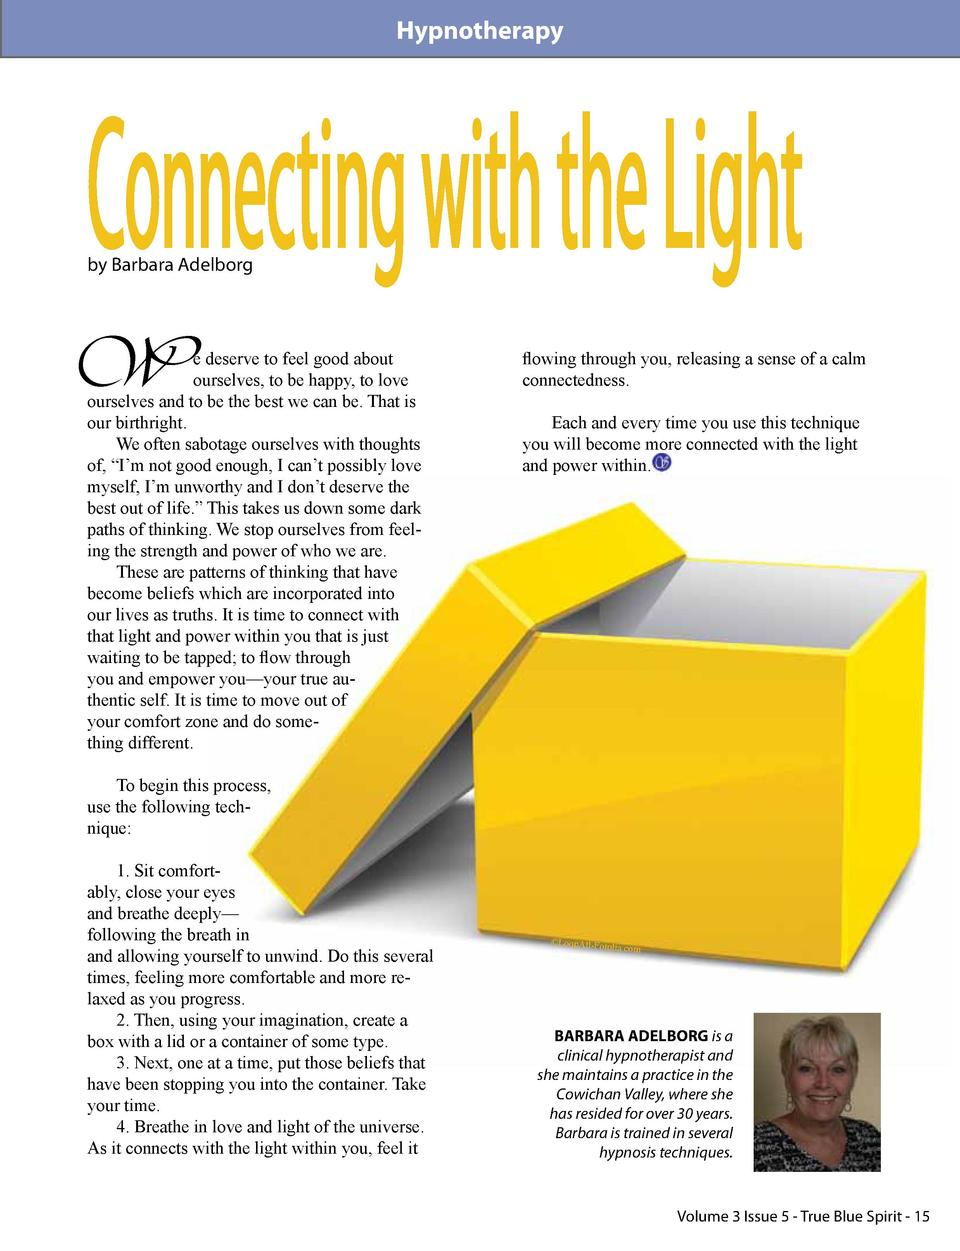 Hypnotherapy  Connecting with the Light by Barbara Adelborg  W  e deserve to feel good about ourselves, to be happy, to lo...